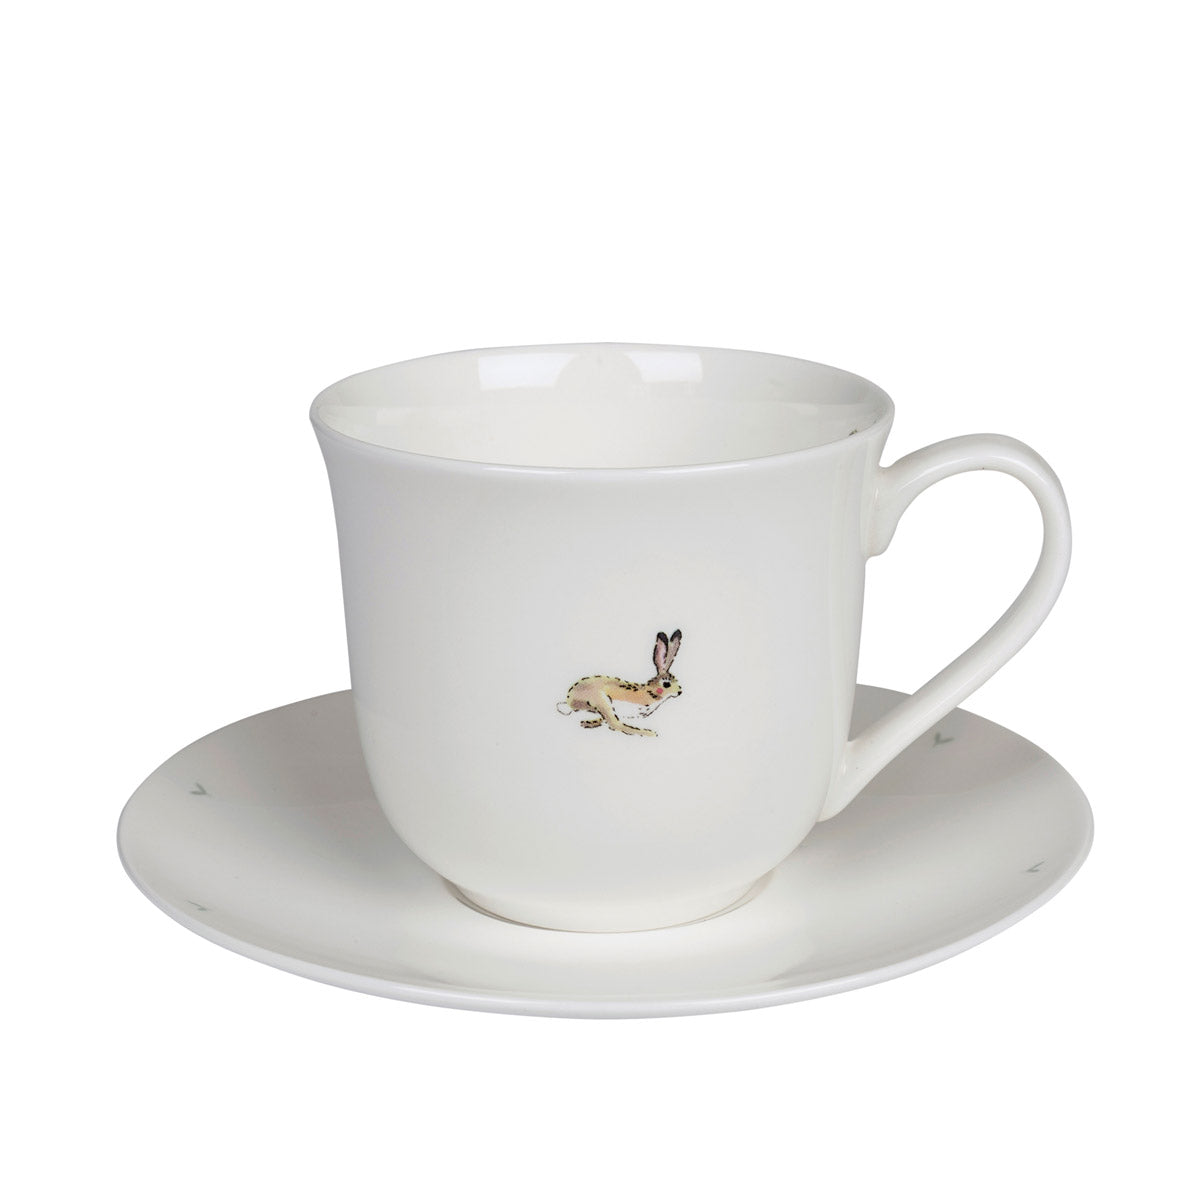 Hare Teacup and Saucer